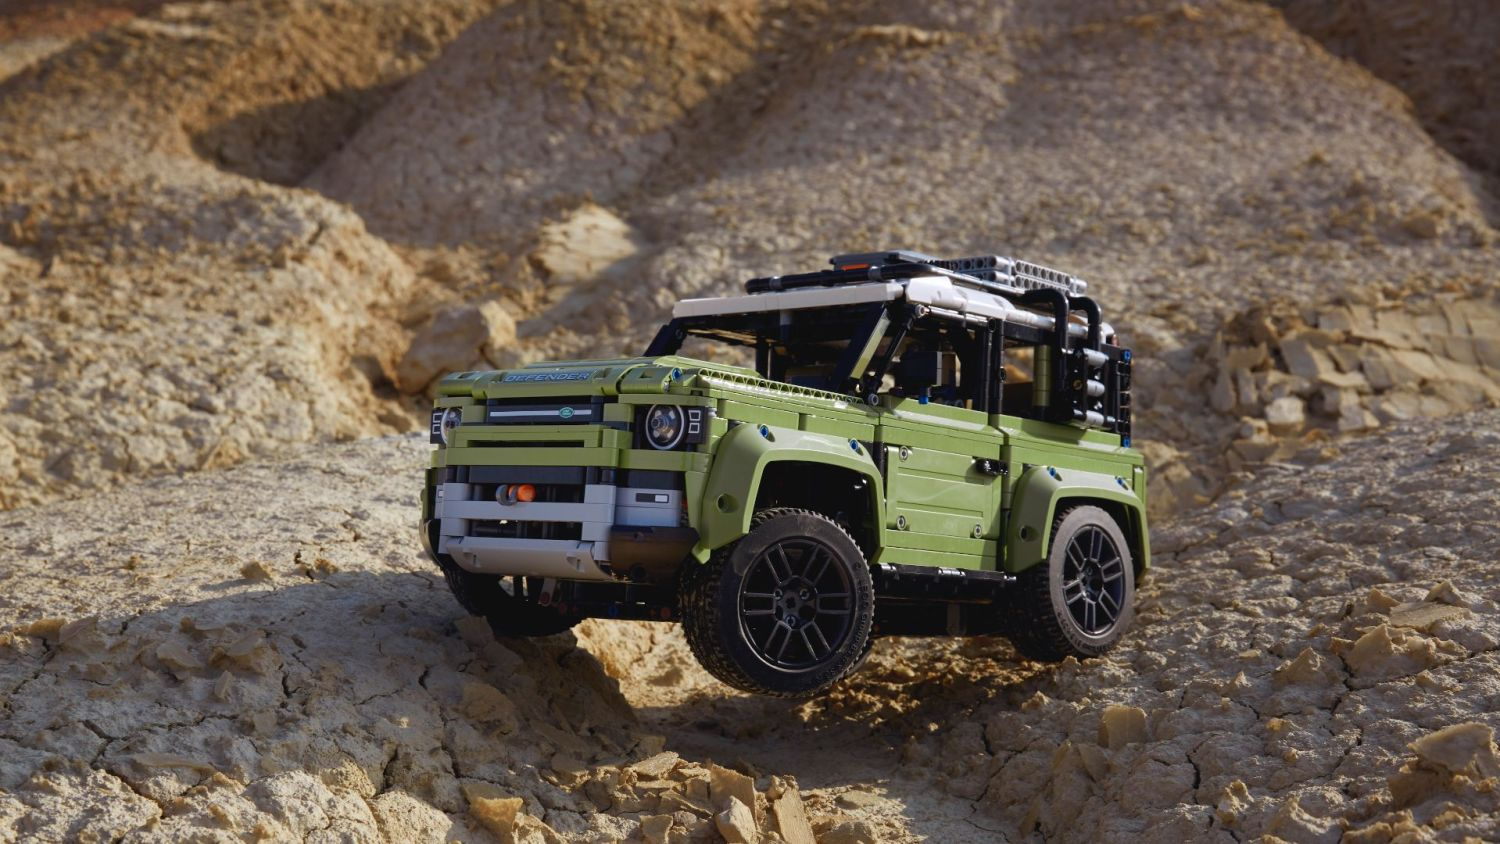 Lego Land Rover Defender